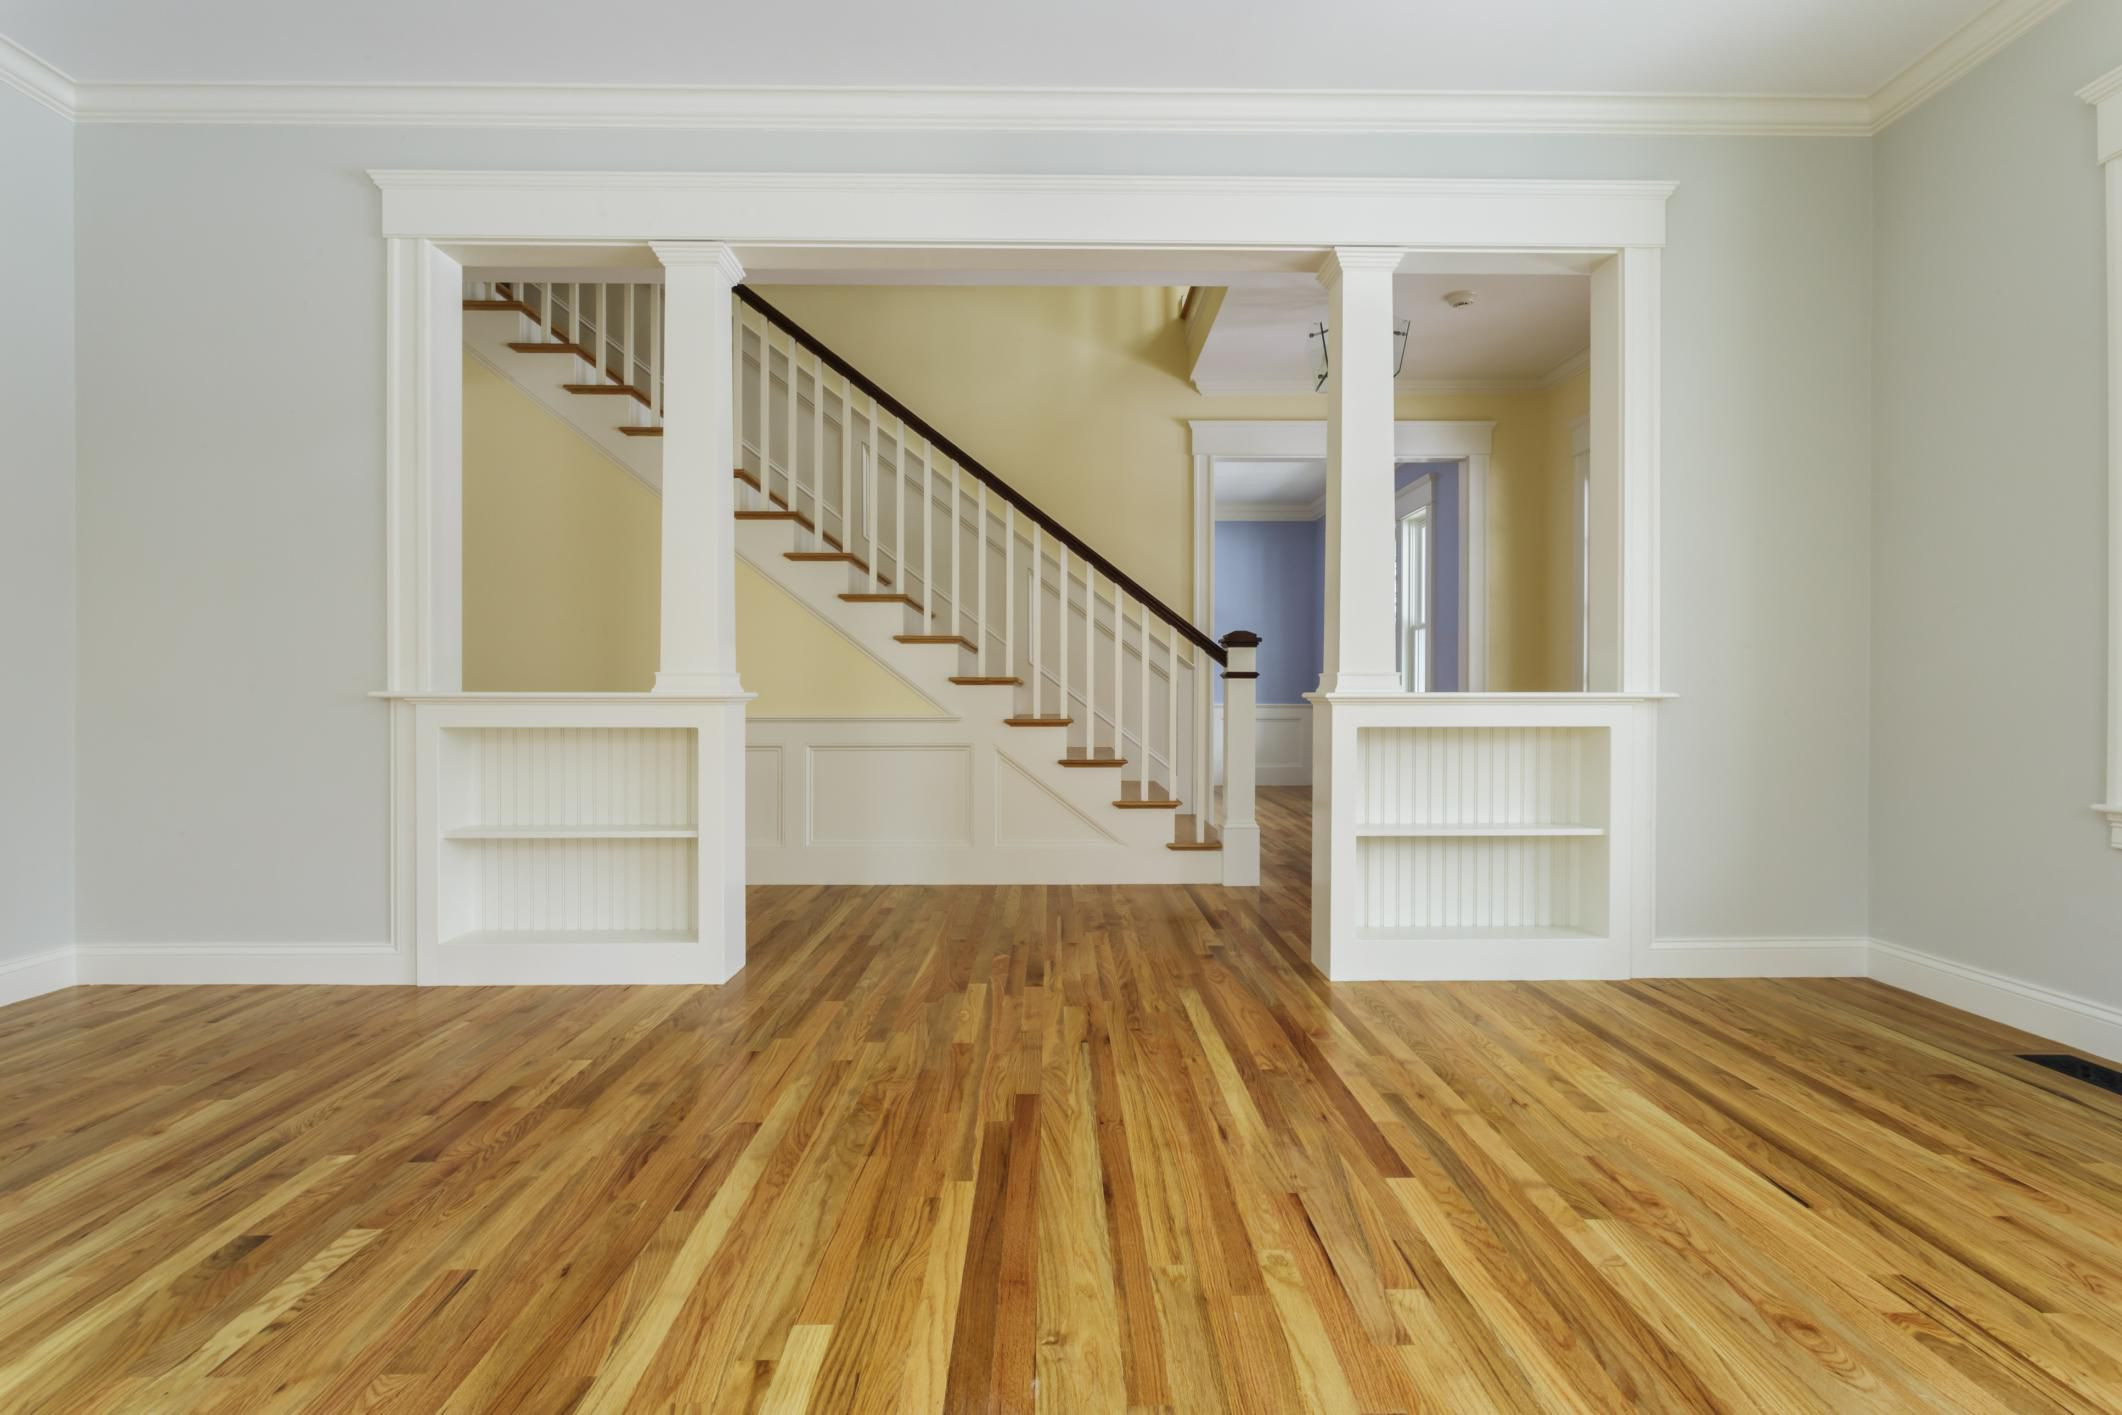 Hardwood Flooring 1000 Sq Ft Of Guide to solid Hardwood Floors Throughout 168686571 56a49f213df78cf772834e24